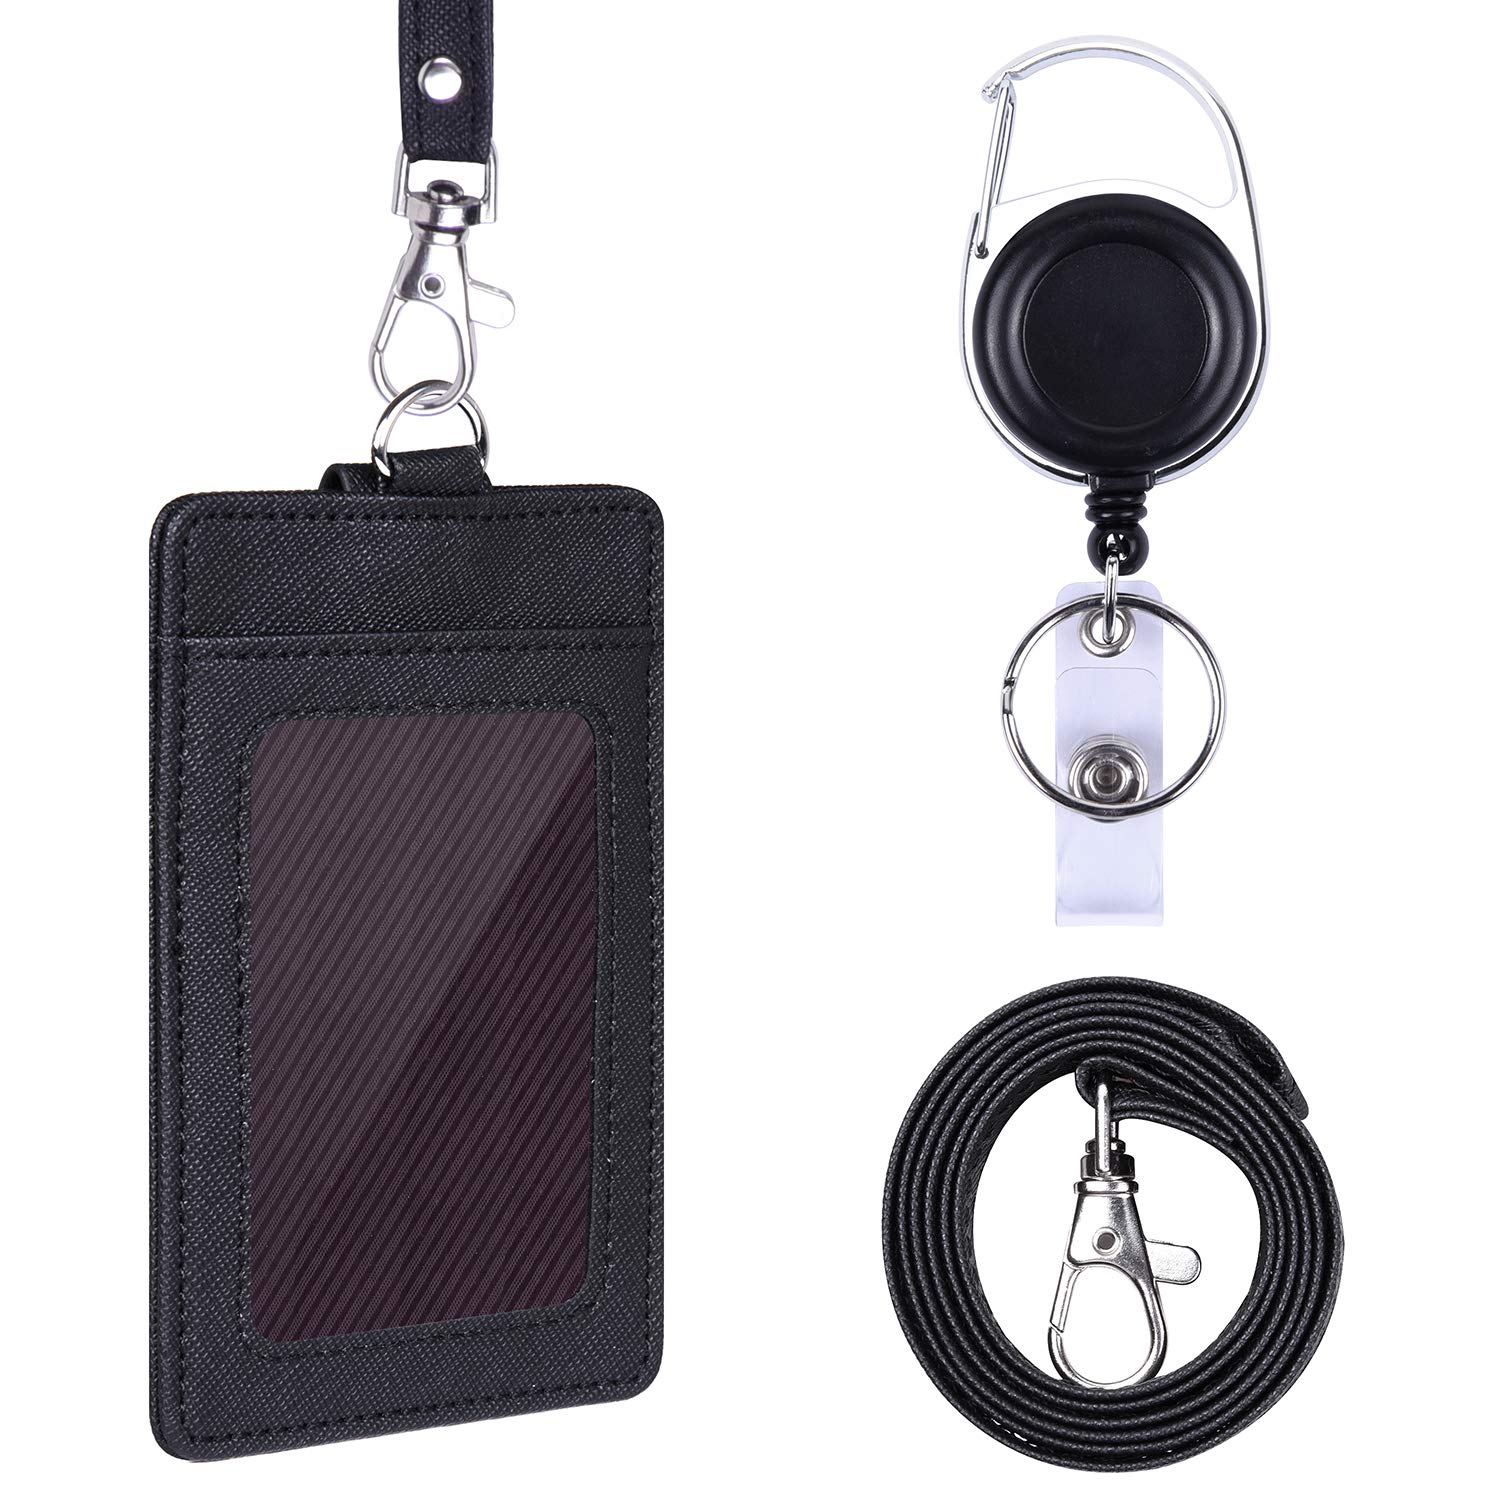 Wisdompro Badge Holder, 2-Sided PU Leather ID Badge Card Holder with 1 Clear ID Window and 2 Card Slots, 18.8 inch Neck Lanyard Strap and Carabiner Retractable Reel Clip - Black (Vertical)